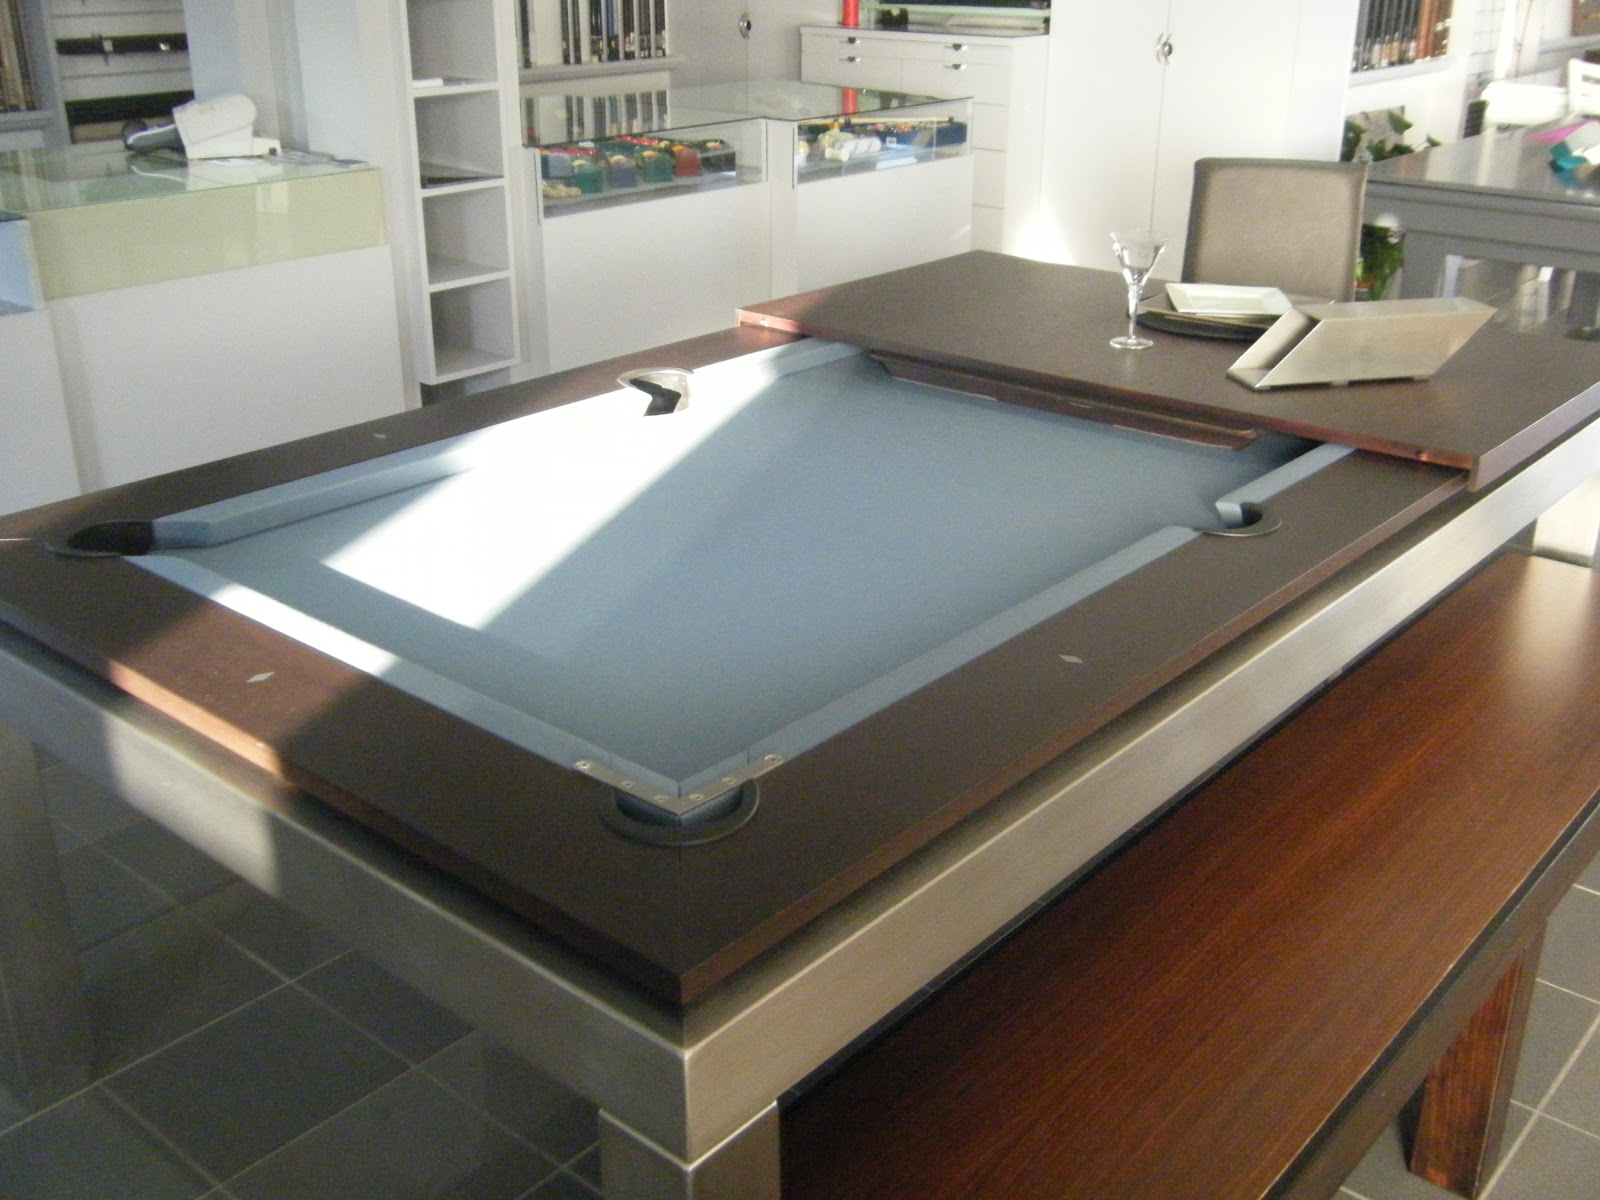 Fabricant de billards juin 2012 for Table de salle a manger et billard